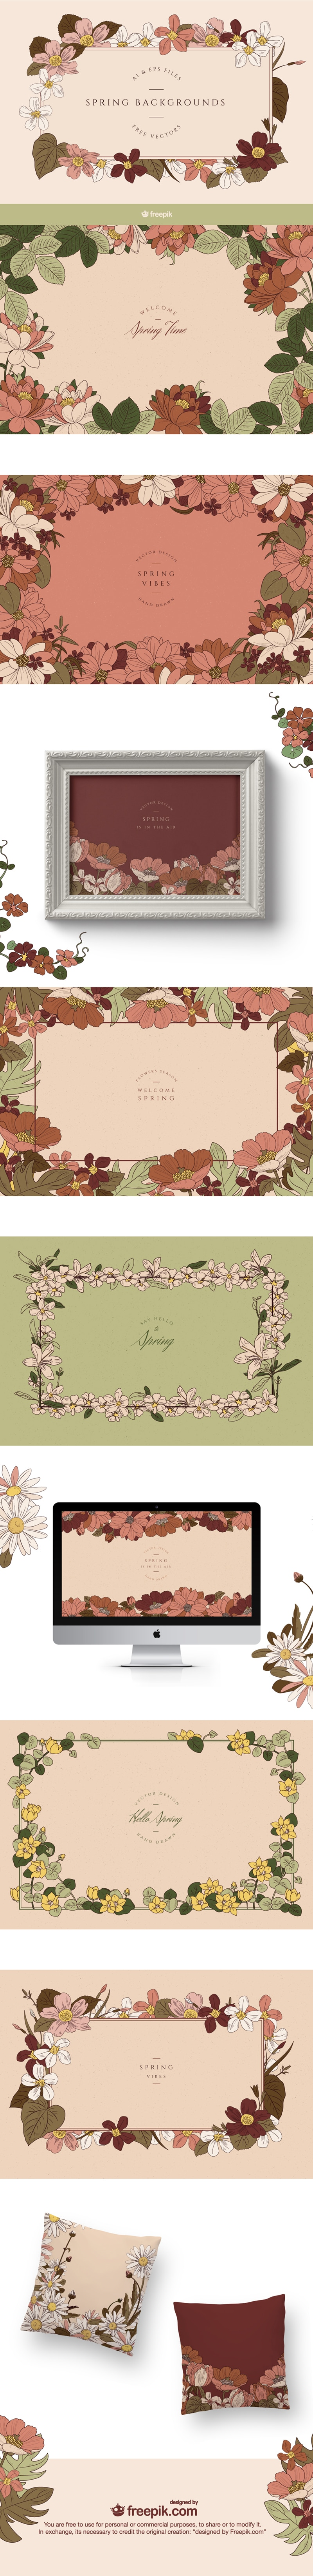 Vintage Spring Backgrounds